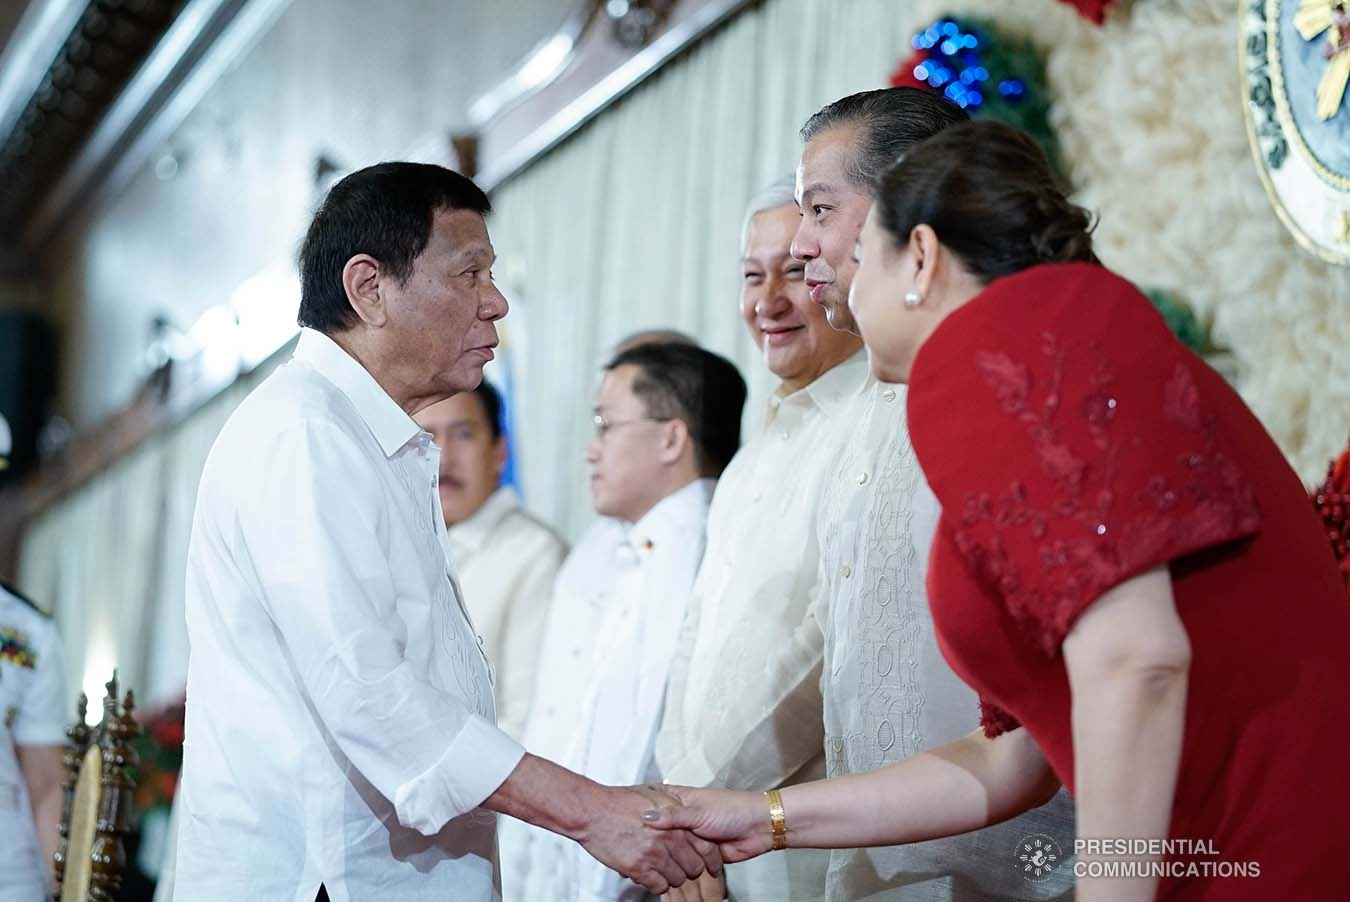 President Rodrigo Roa Duterte greets House Majority Leader Martin Romualdez and Negros Occidental Fourth District Representative Juliet Ferrer during the ceremonial signing of the Postponement of the 2020 Barangay and Sangguniang Kabataan Elections Act and the Malasakit Center Act at the Malacañan Palace on December 3, 2019. KING RODRIGUEZ/PRESIDENTIAL PHOTO